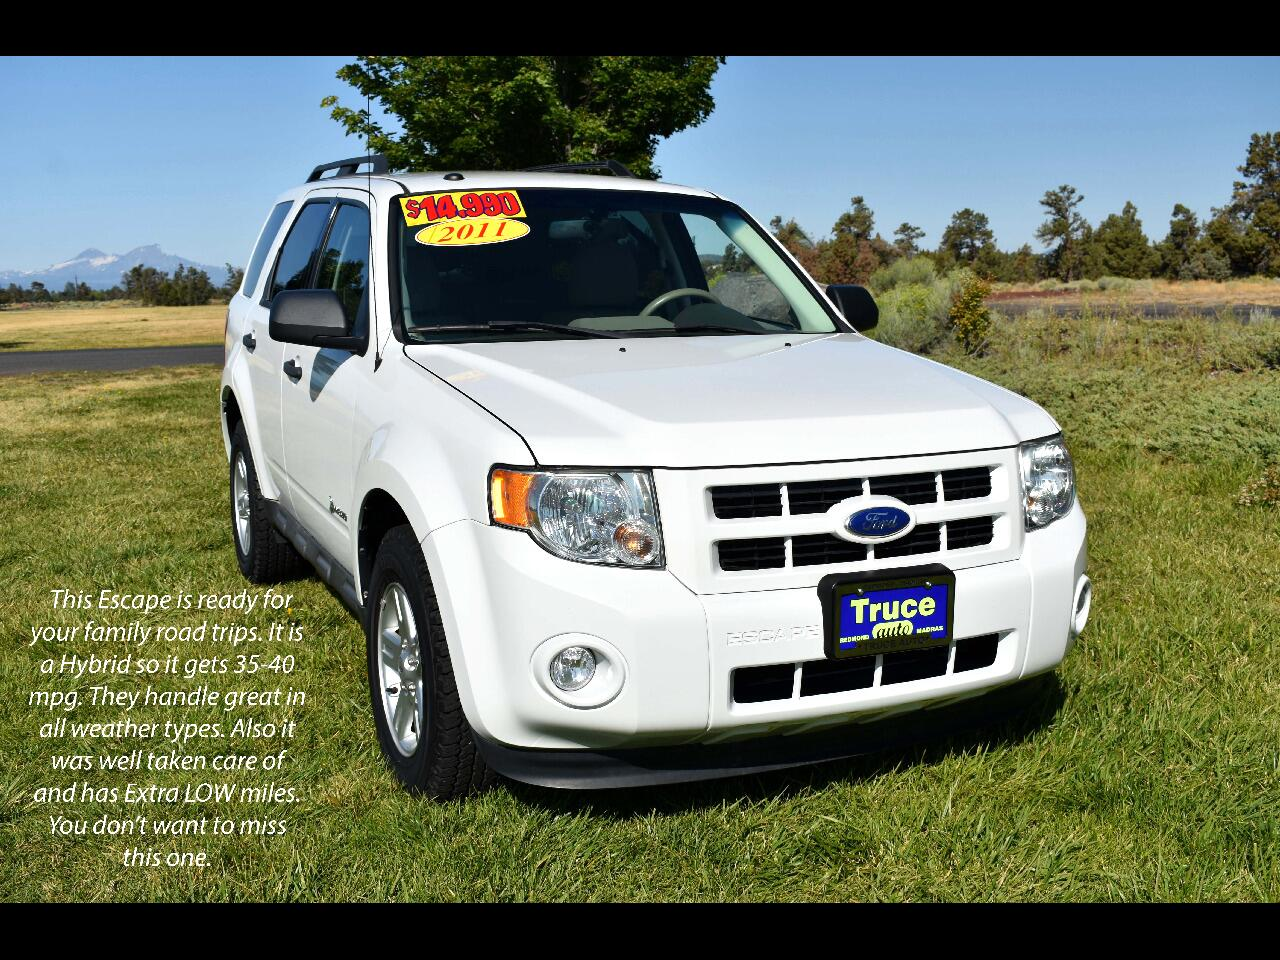 2011 Ford Escape 4WD 4dr Hybrid**LOW MILES**